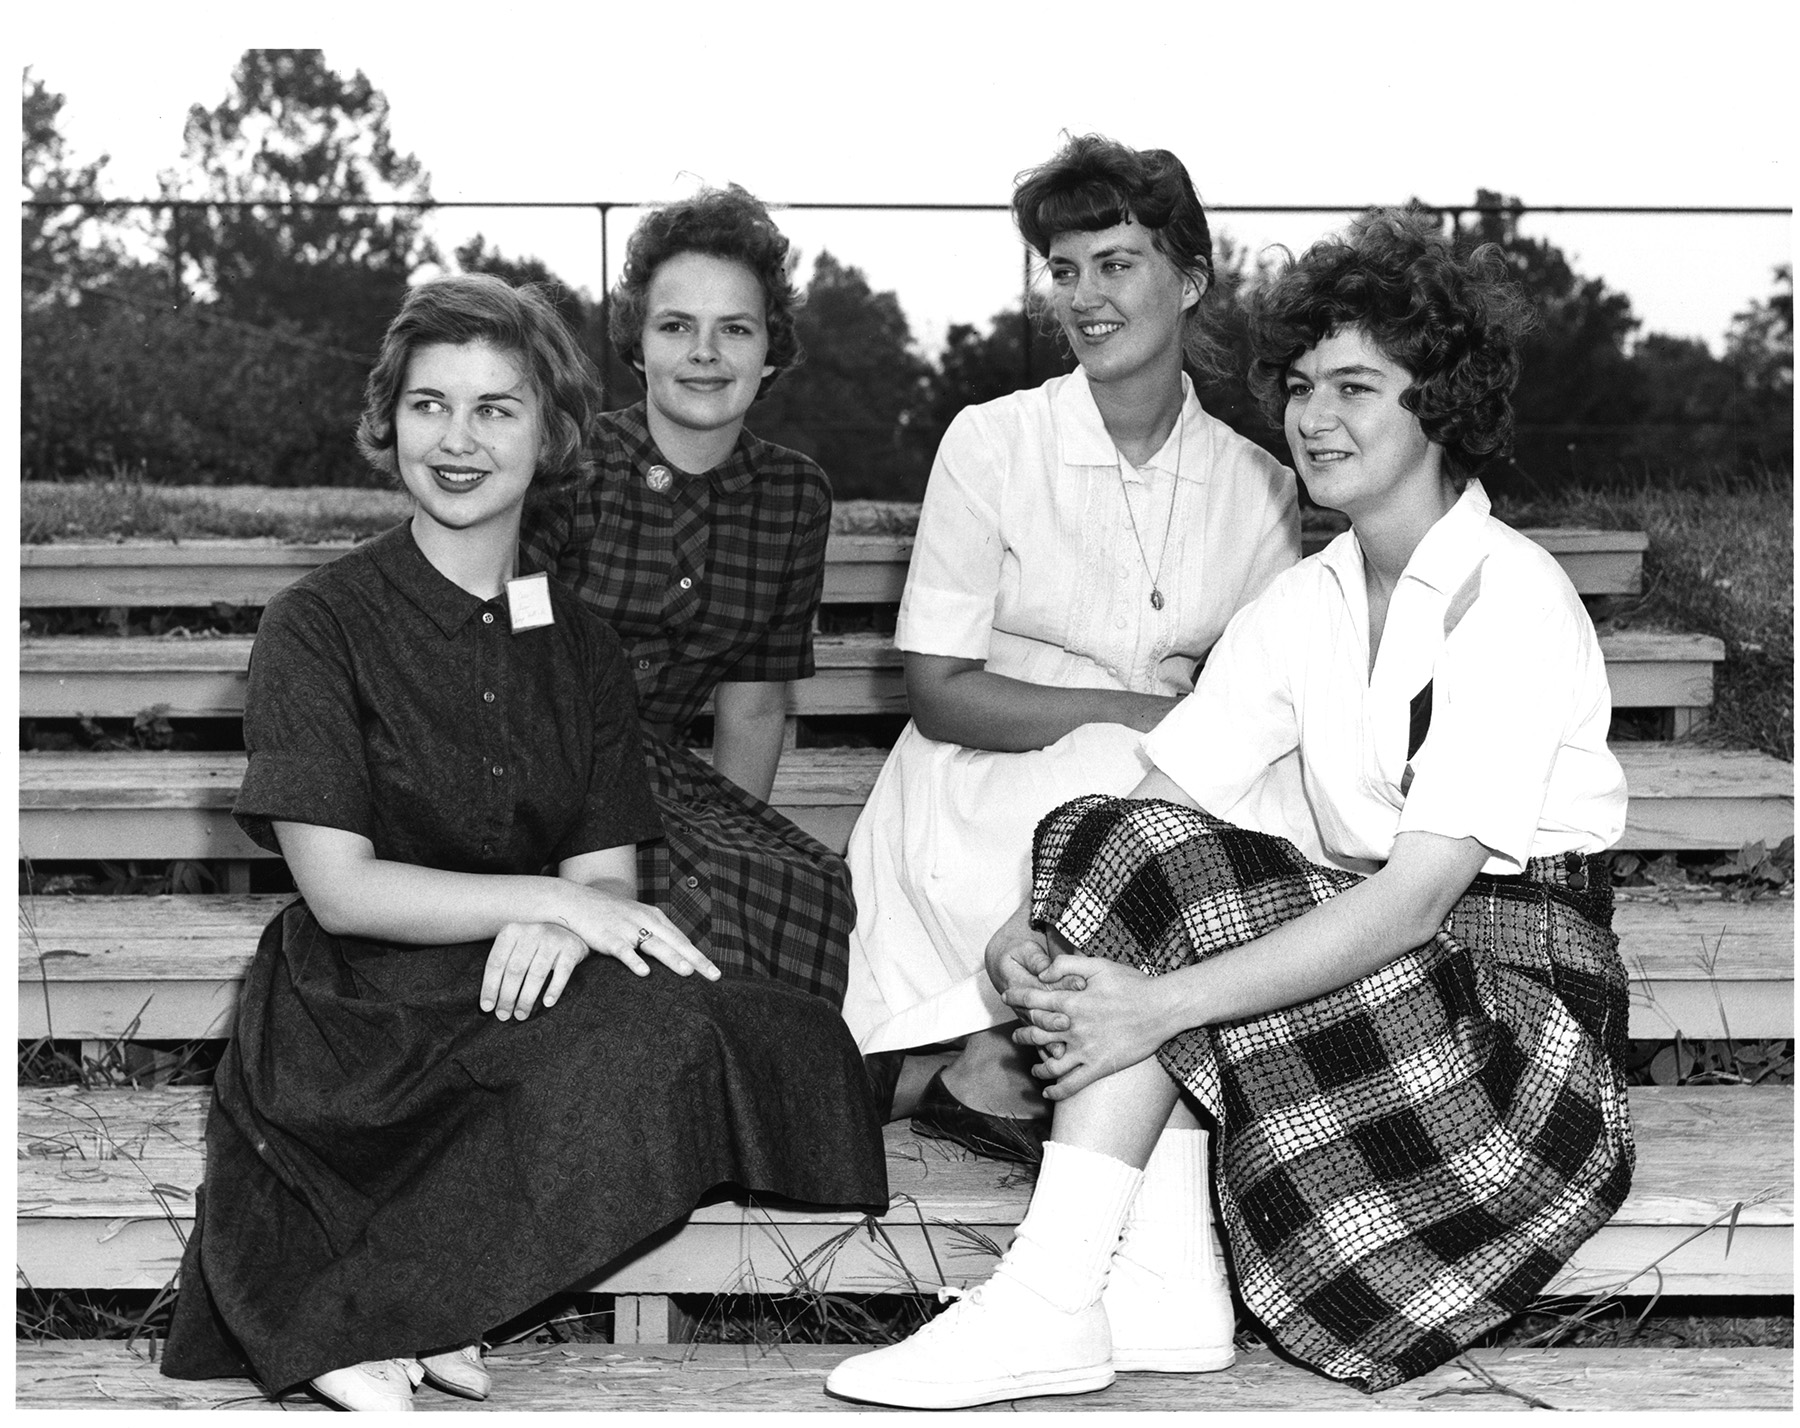 Group of students in 1965